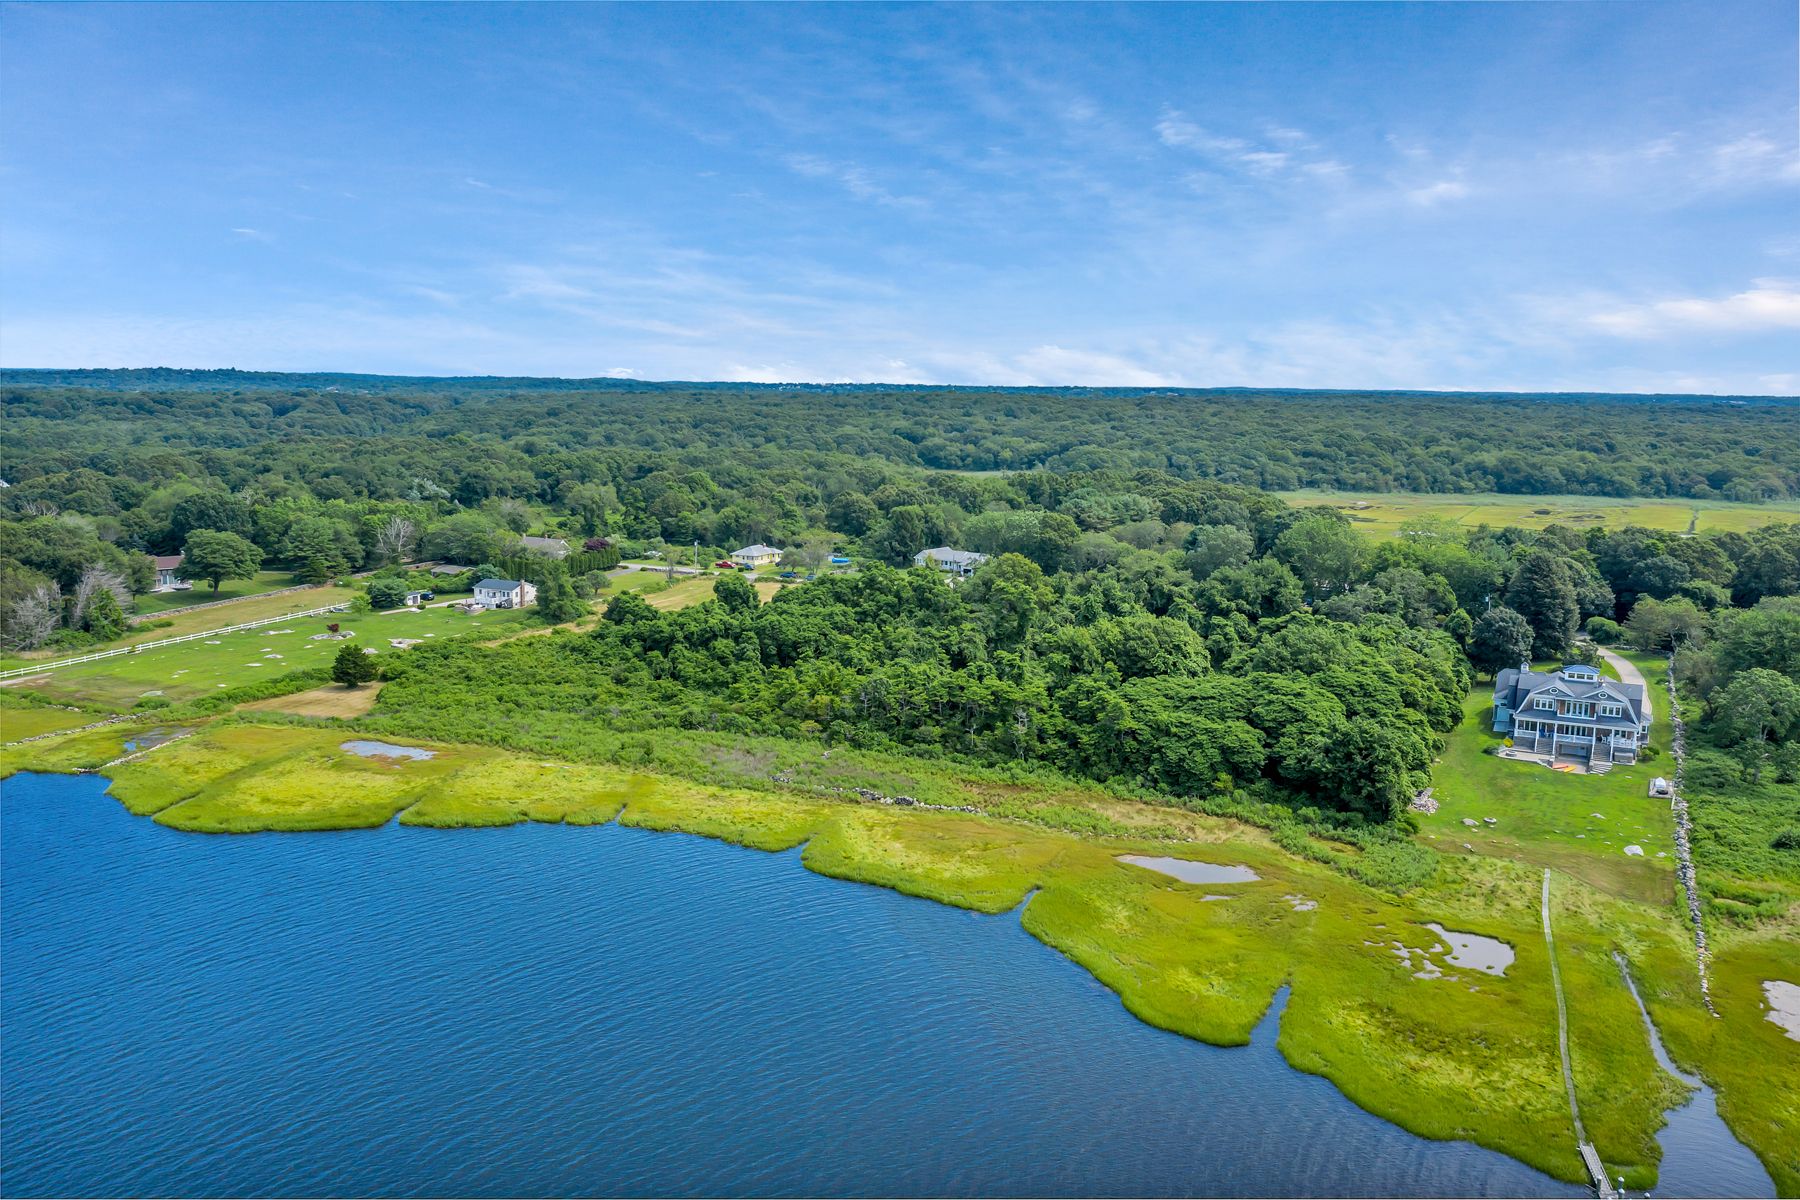 Terreno para Venda às Spectacular Waterfront Land! 238b Palmer Neck Road, Stonington, Connecticut 06378 Estados Unidos